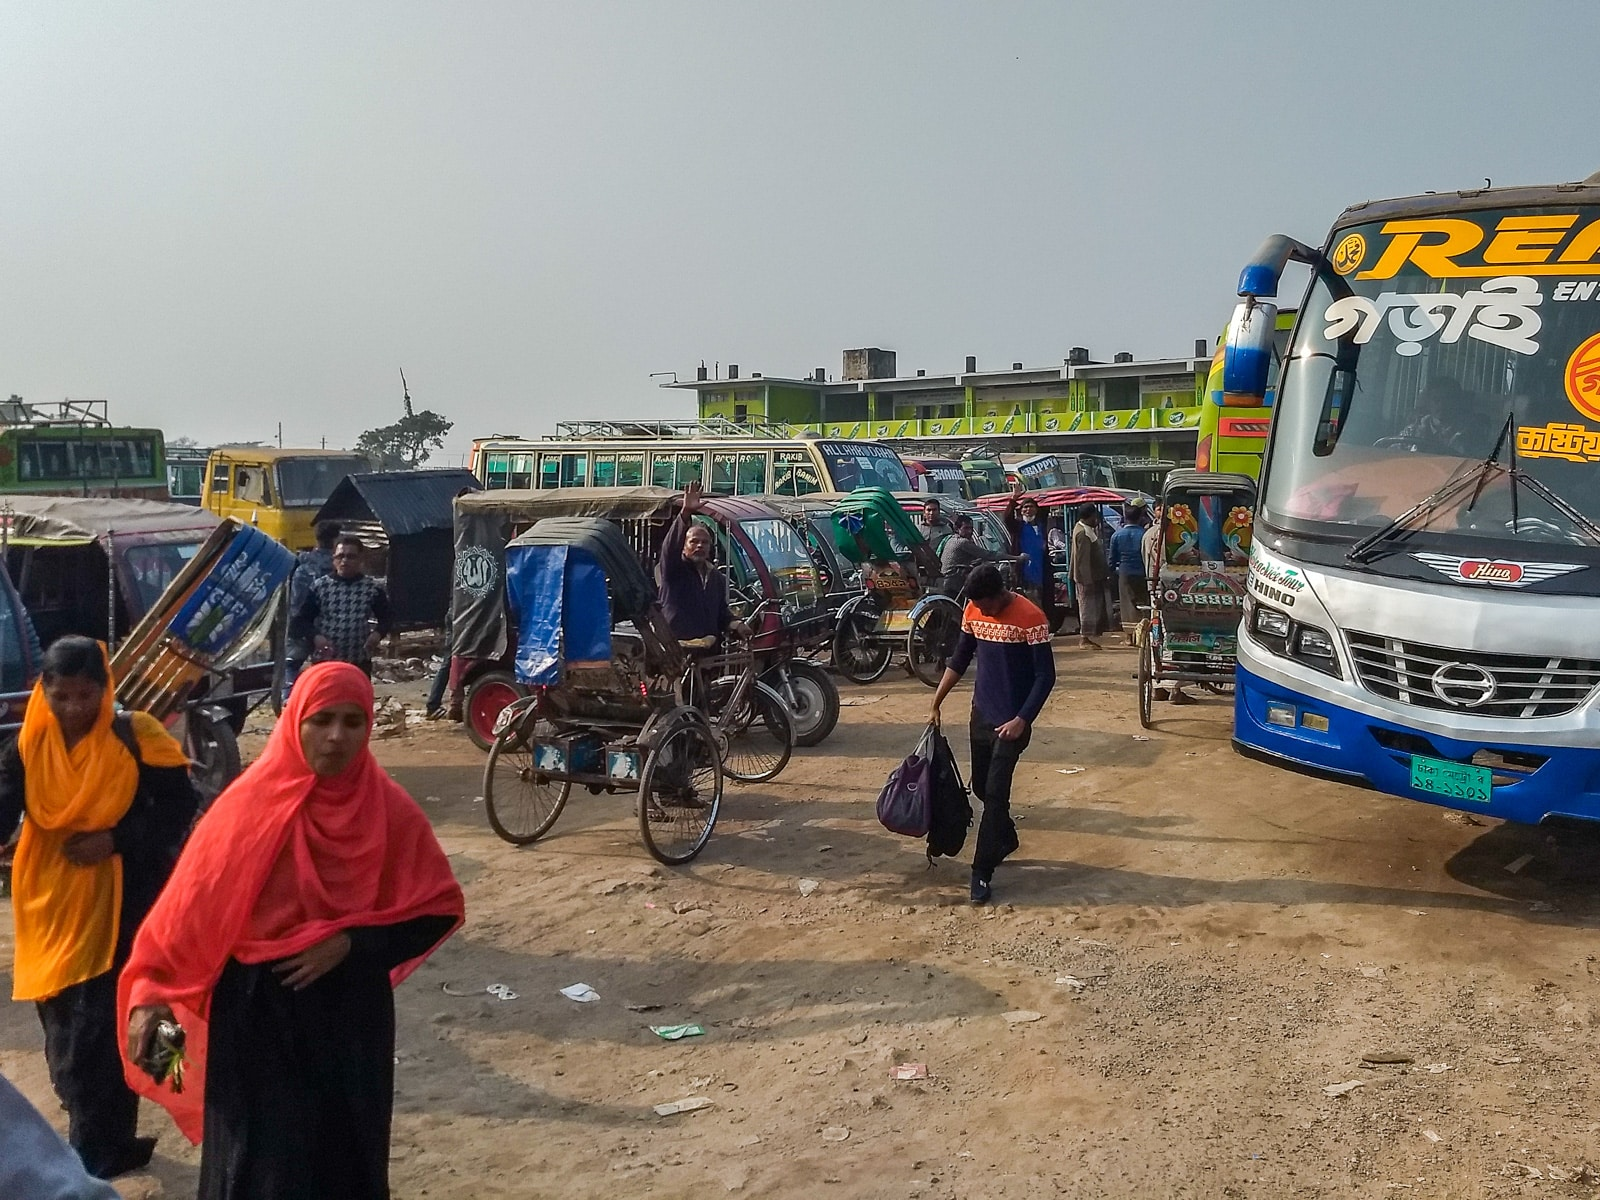 How to get from Khulna to Bagerhat by bus - Sonadonga bus station in Khulna - Lost With Purpose travel blog